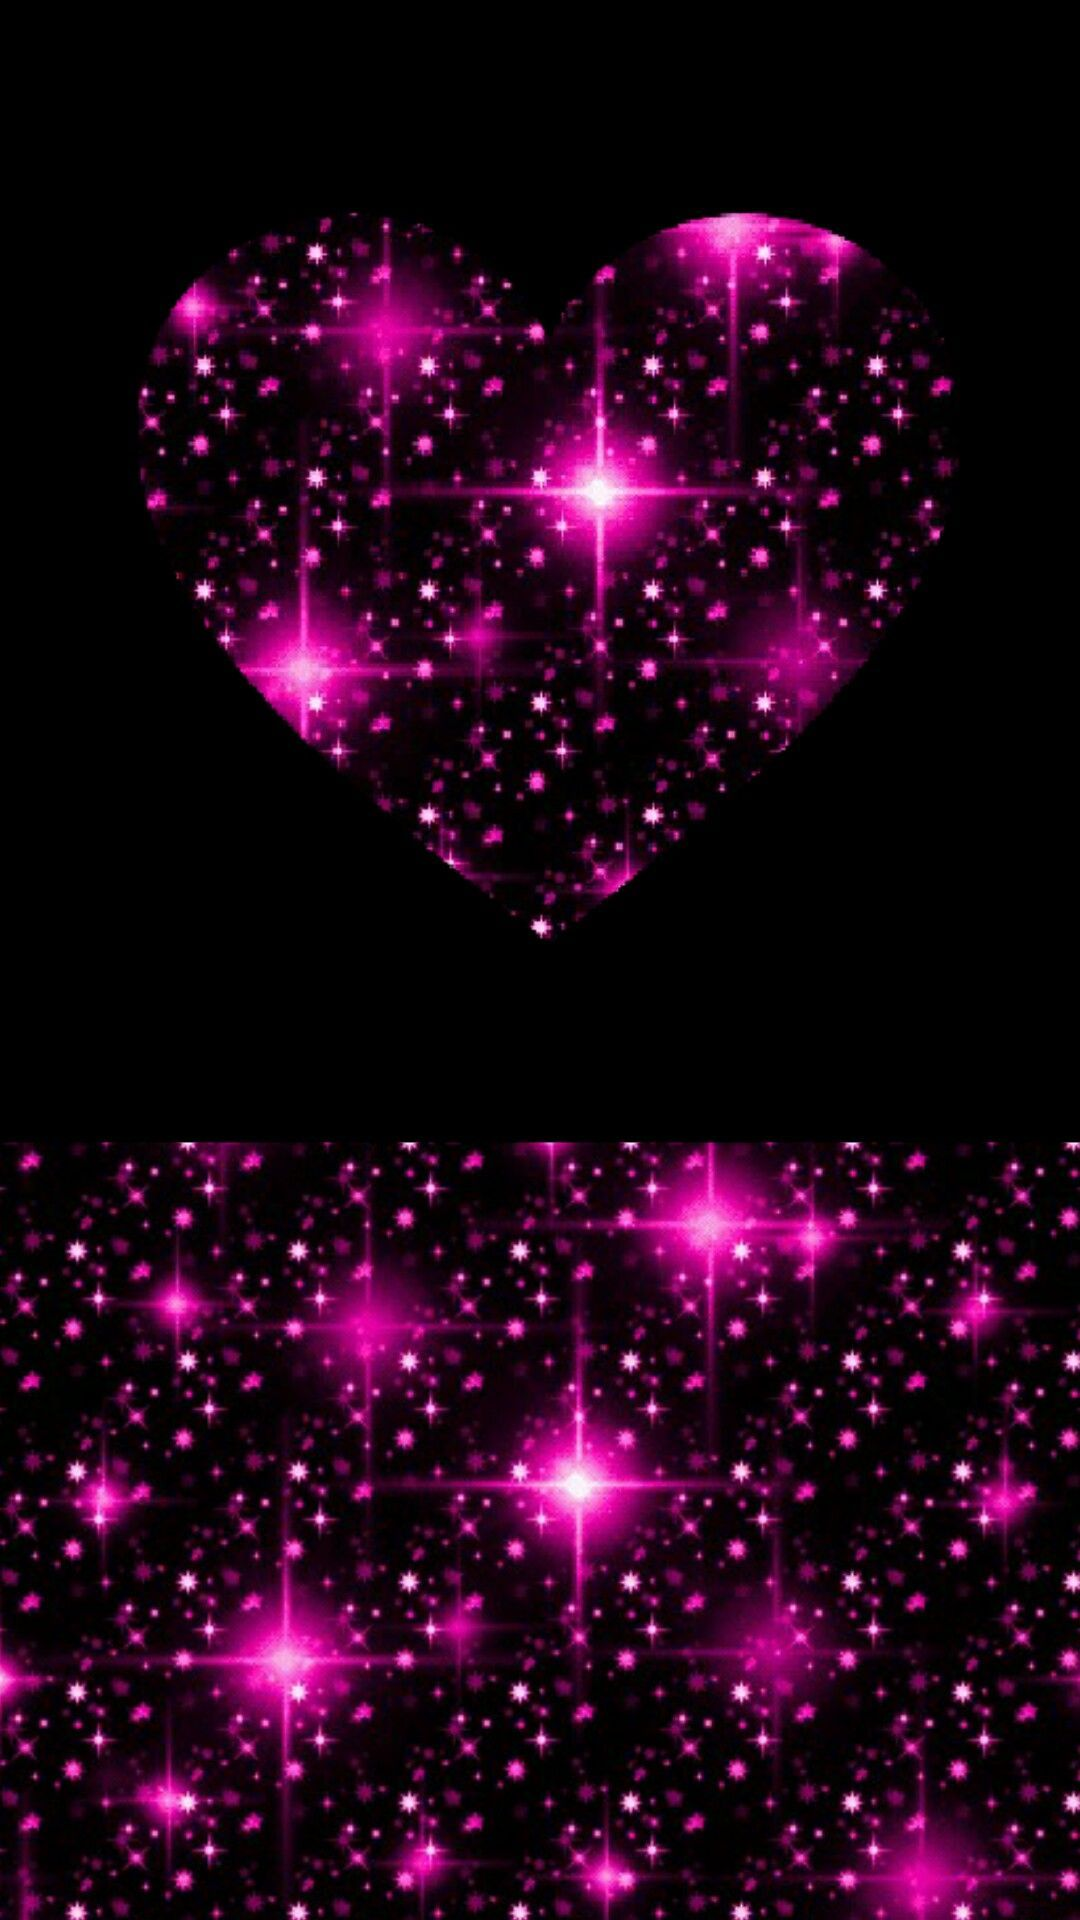 Black And Pink Heart Wallpapers Top Free Black And Pink Heart Backgrounds Wallpaperaccess